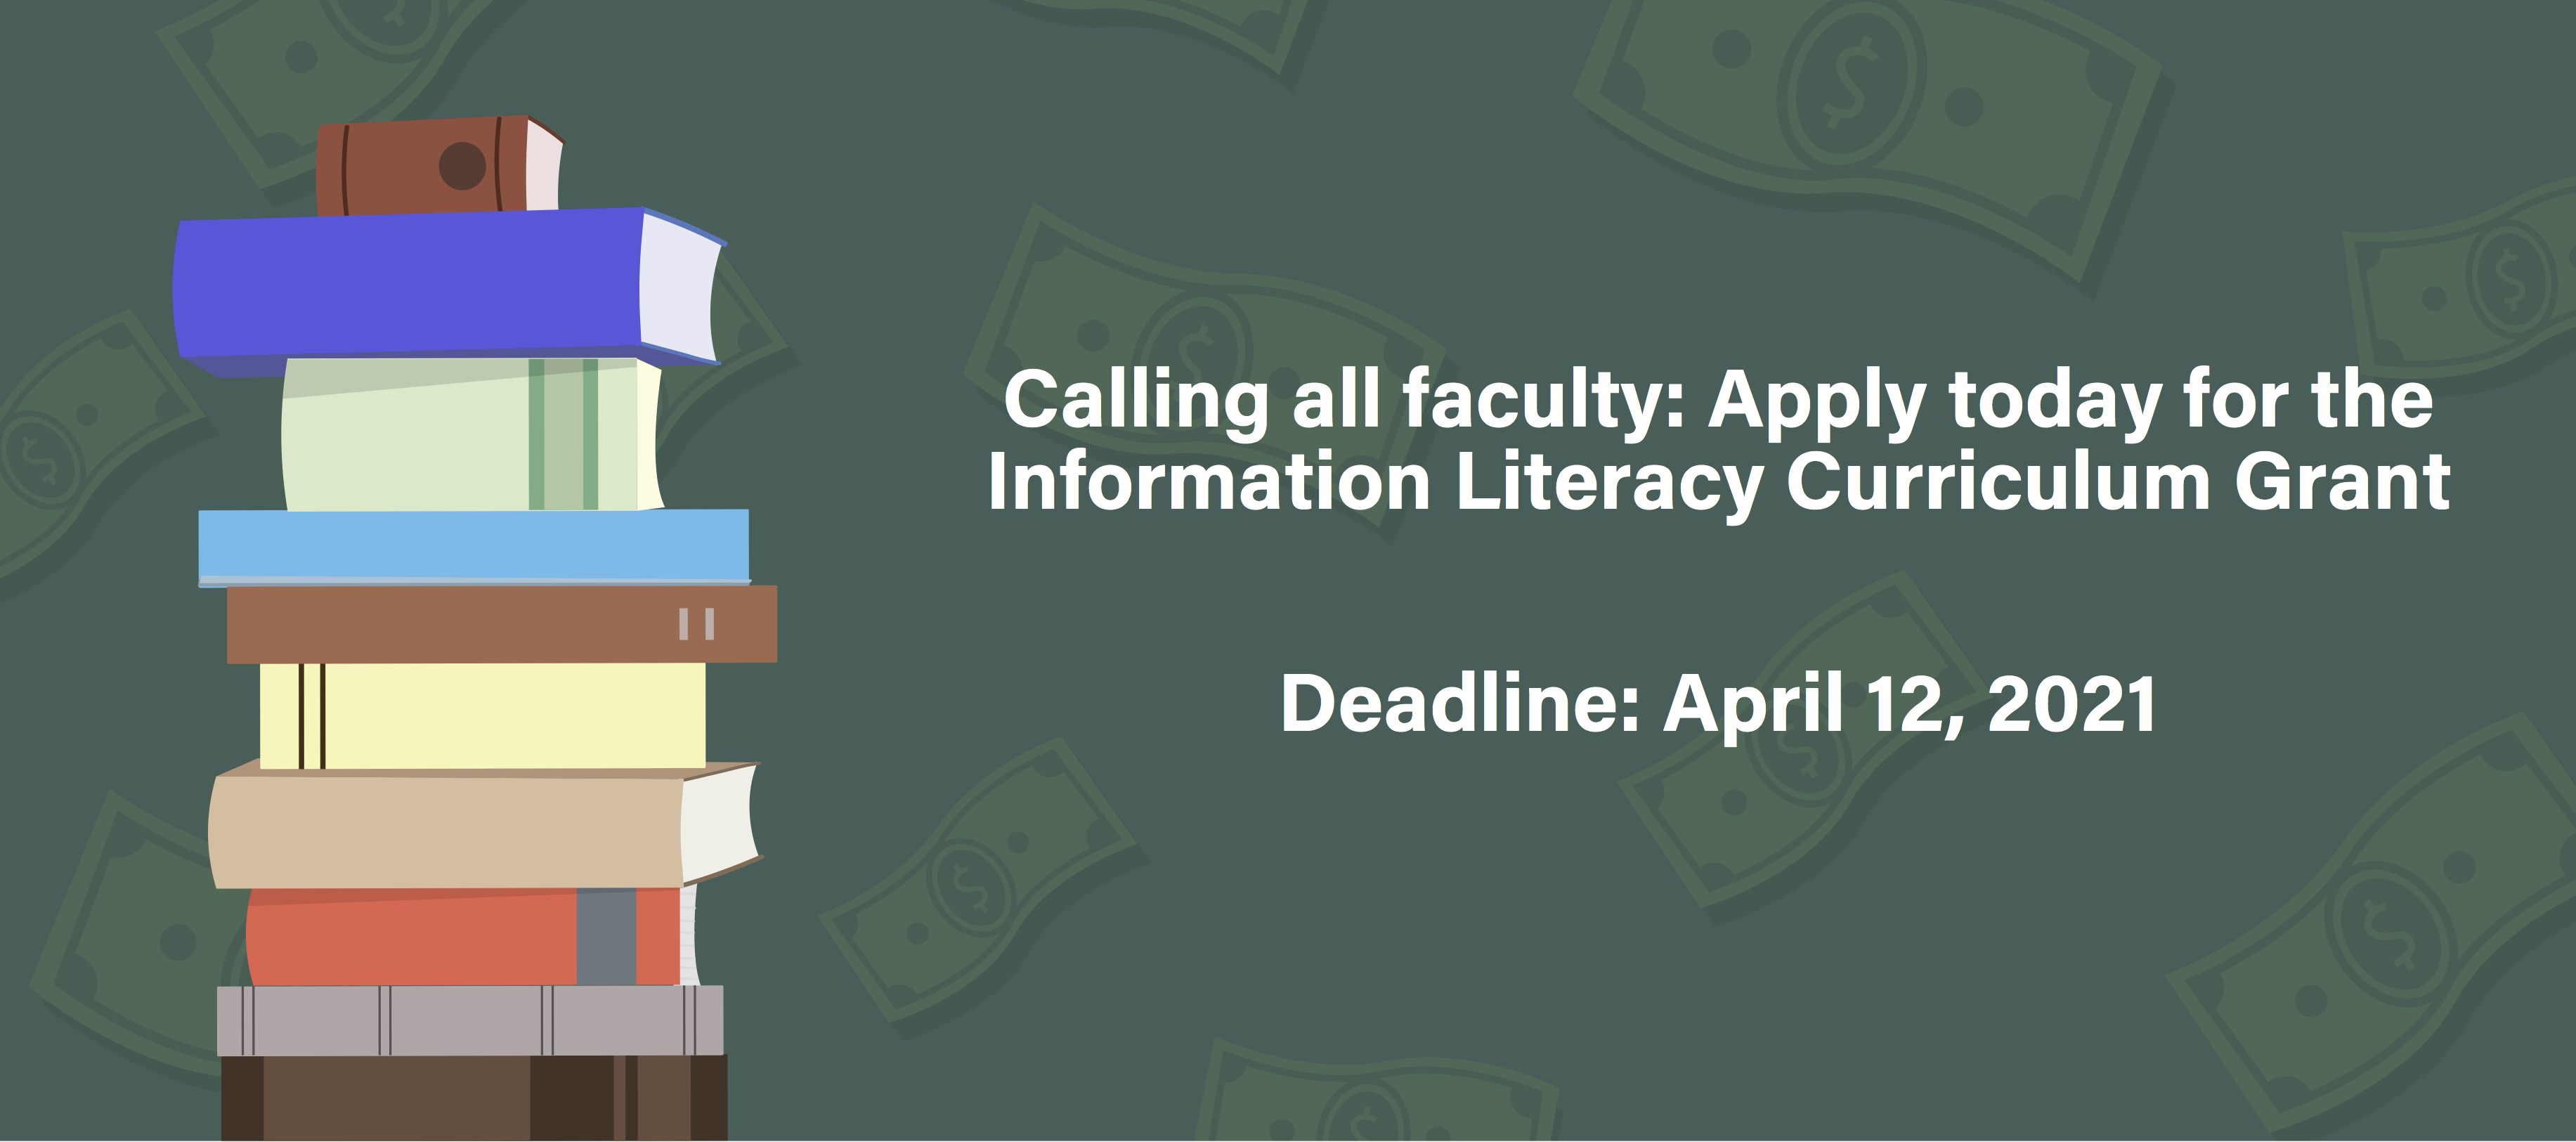 Information Literacy Curriculum Grant 2021